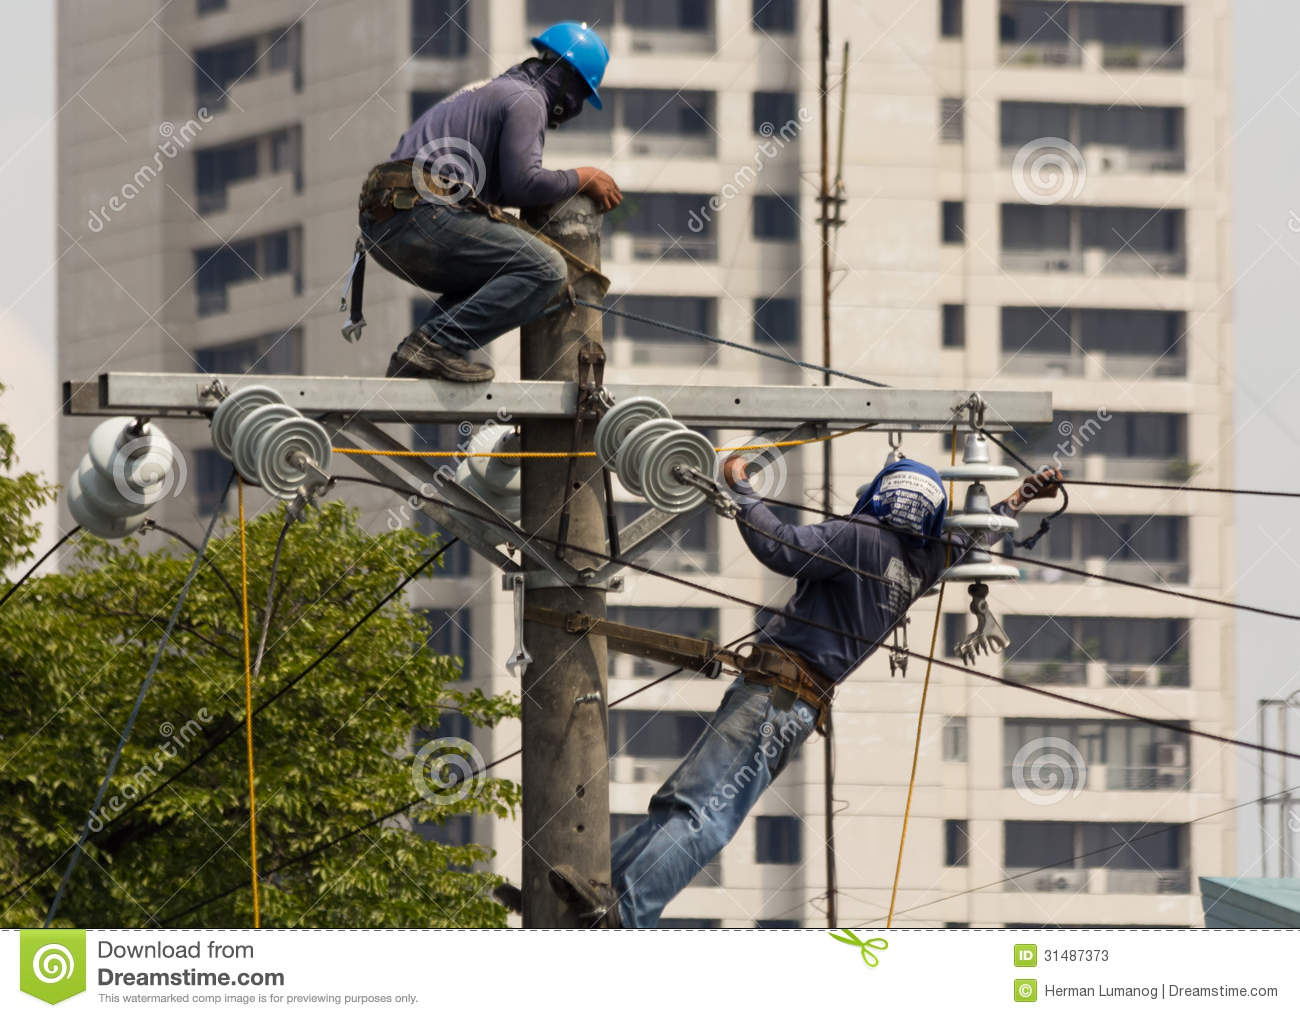 High Voltage Power Line Editorial Stock Photo - Image: 31487373